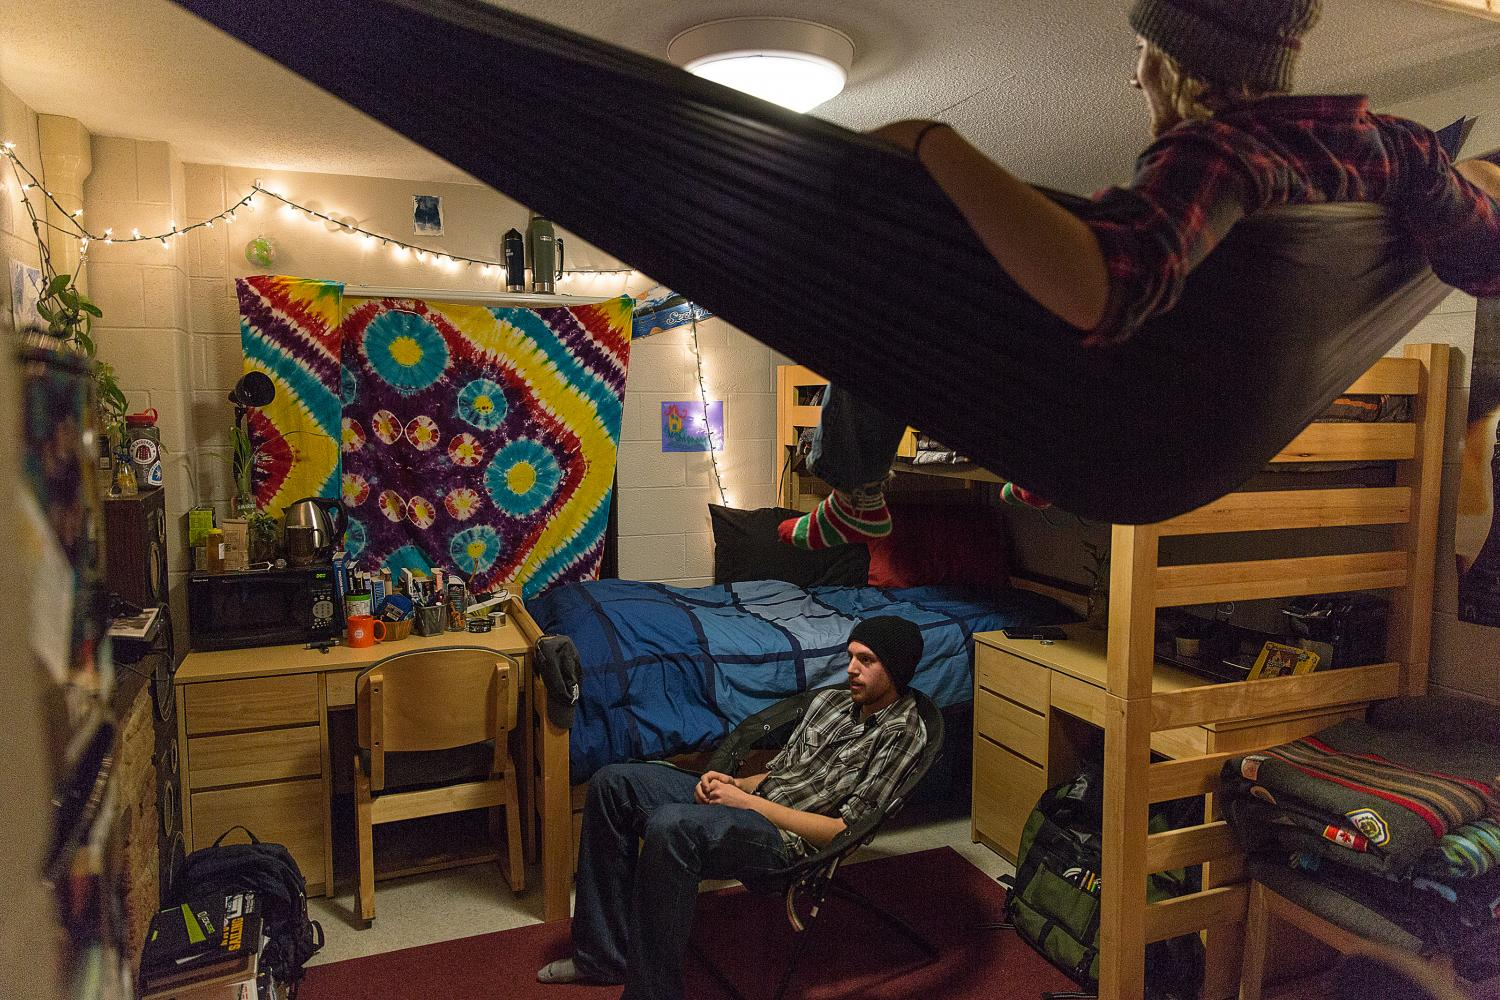 Two male students in a residence hall room